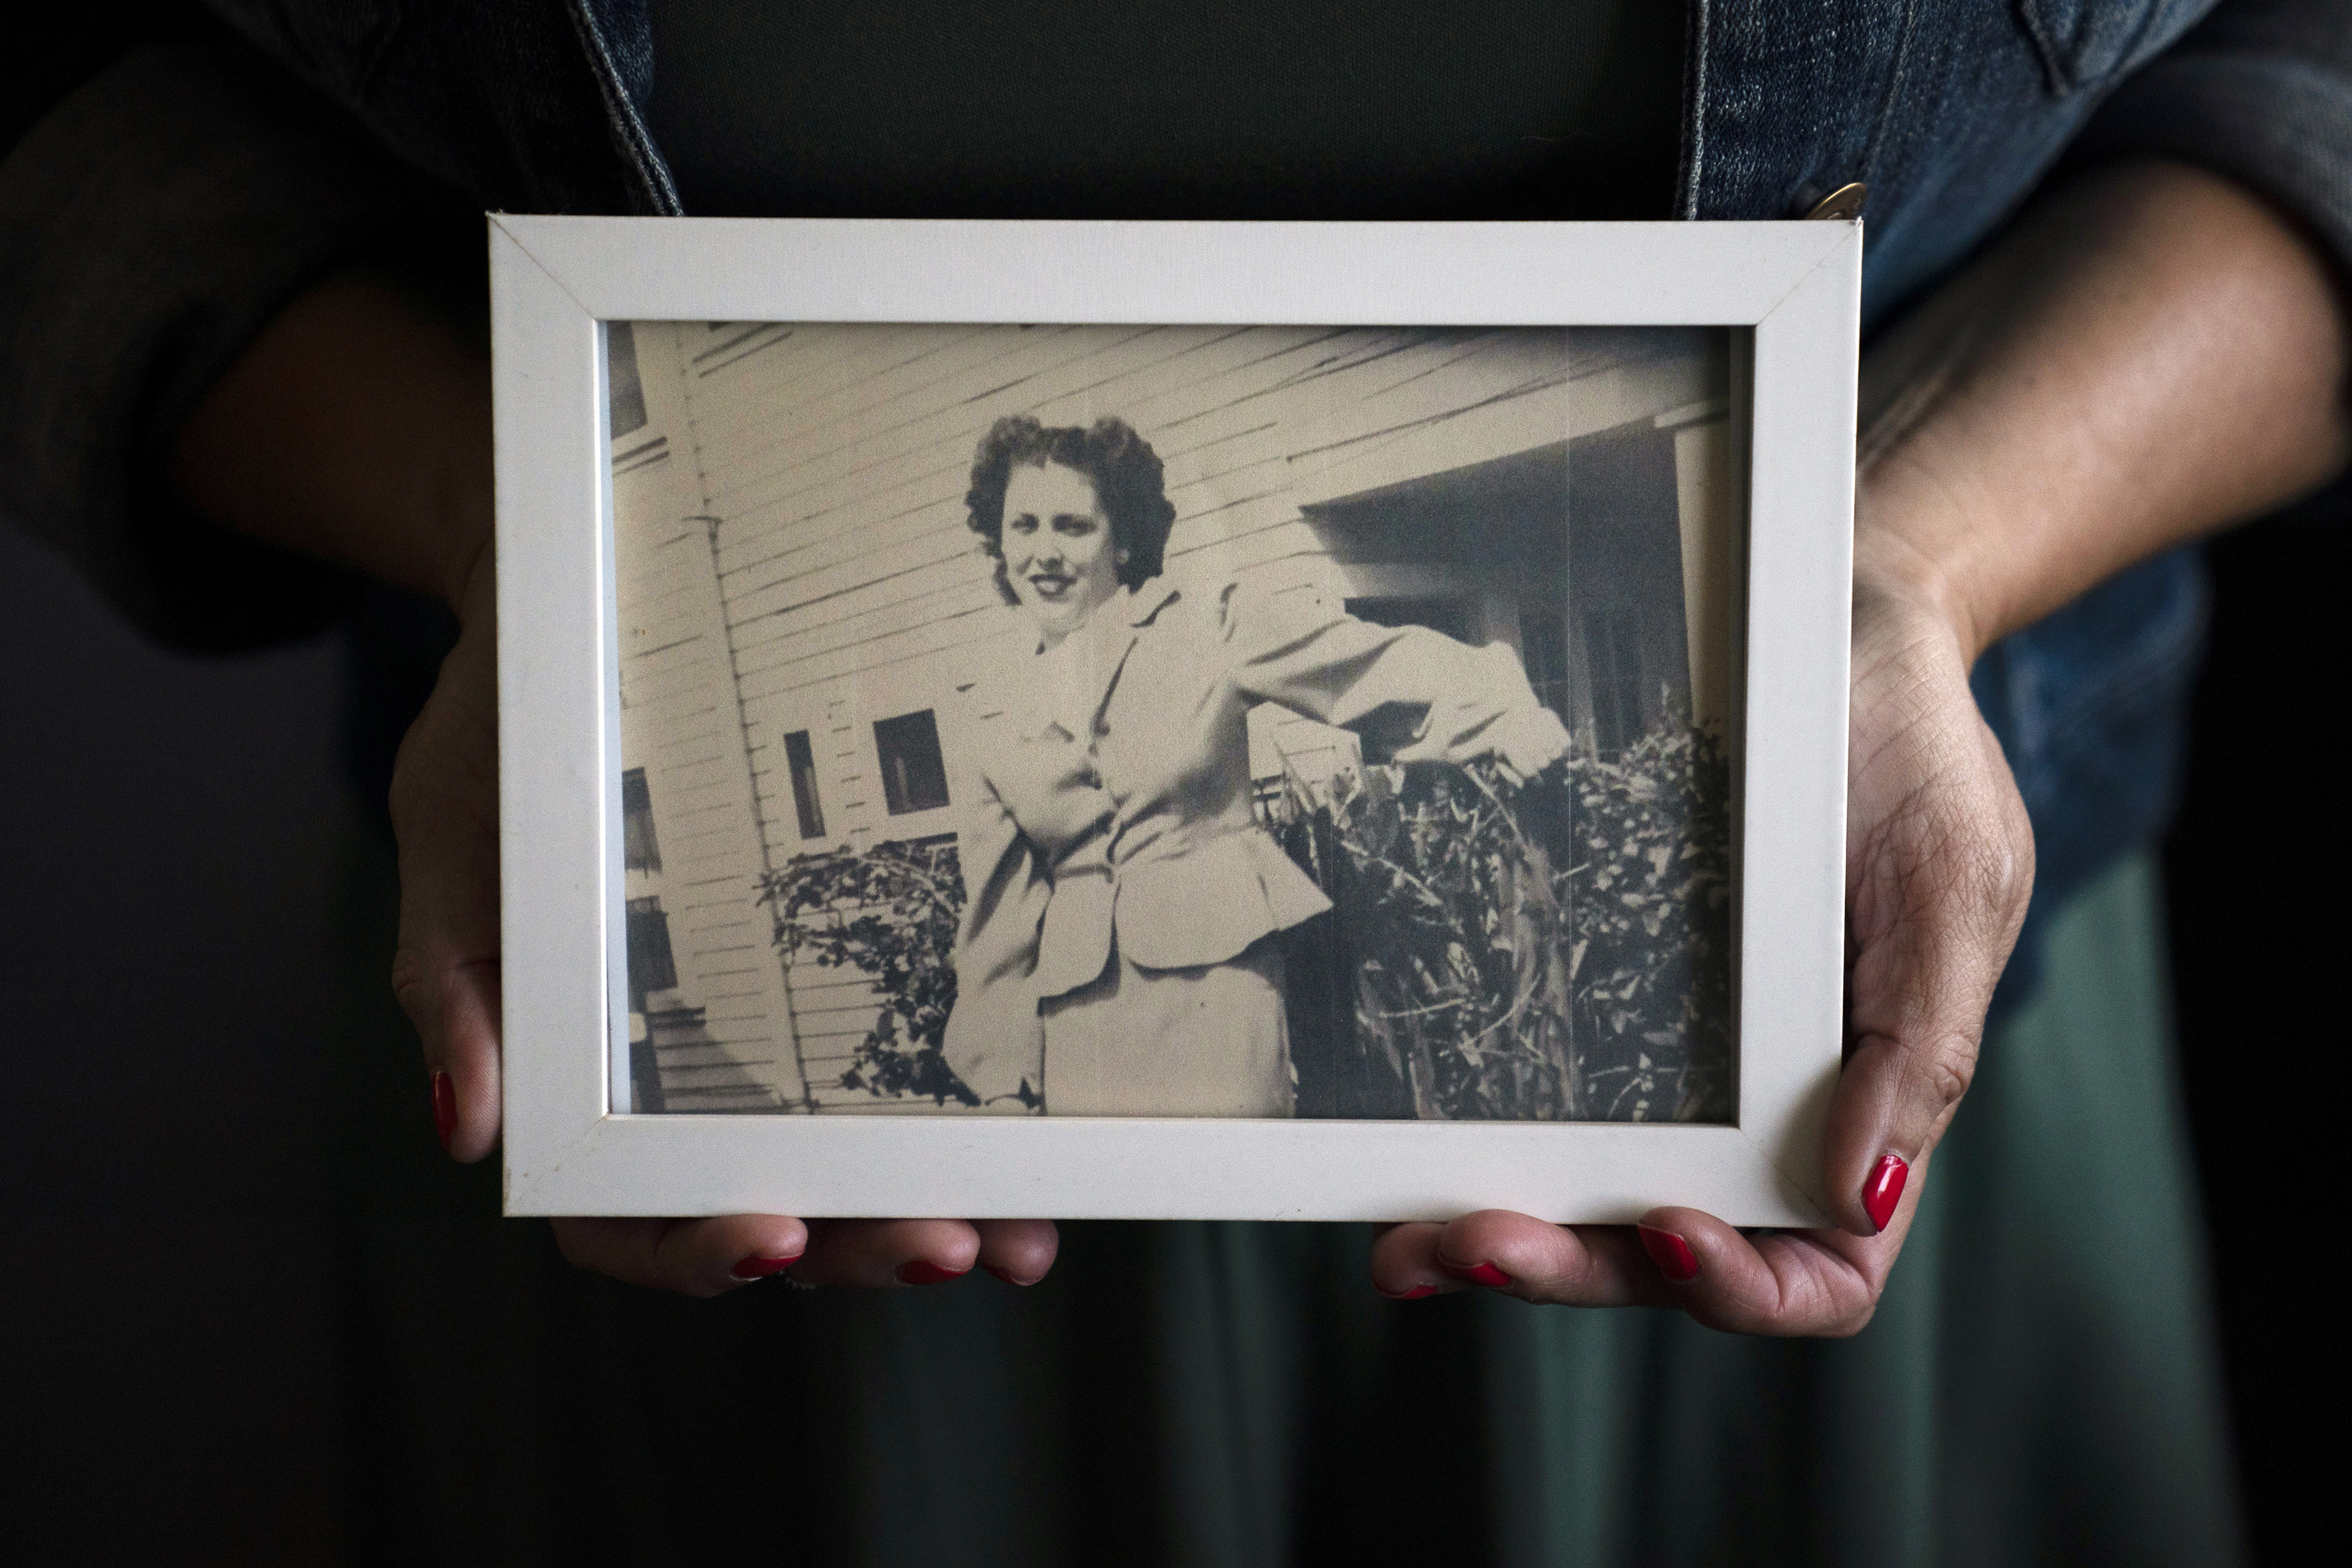 California compensates victims of forced sterilizations, many of them Latinas